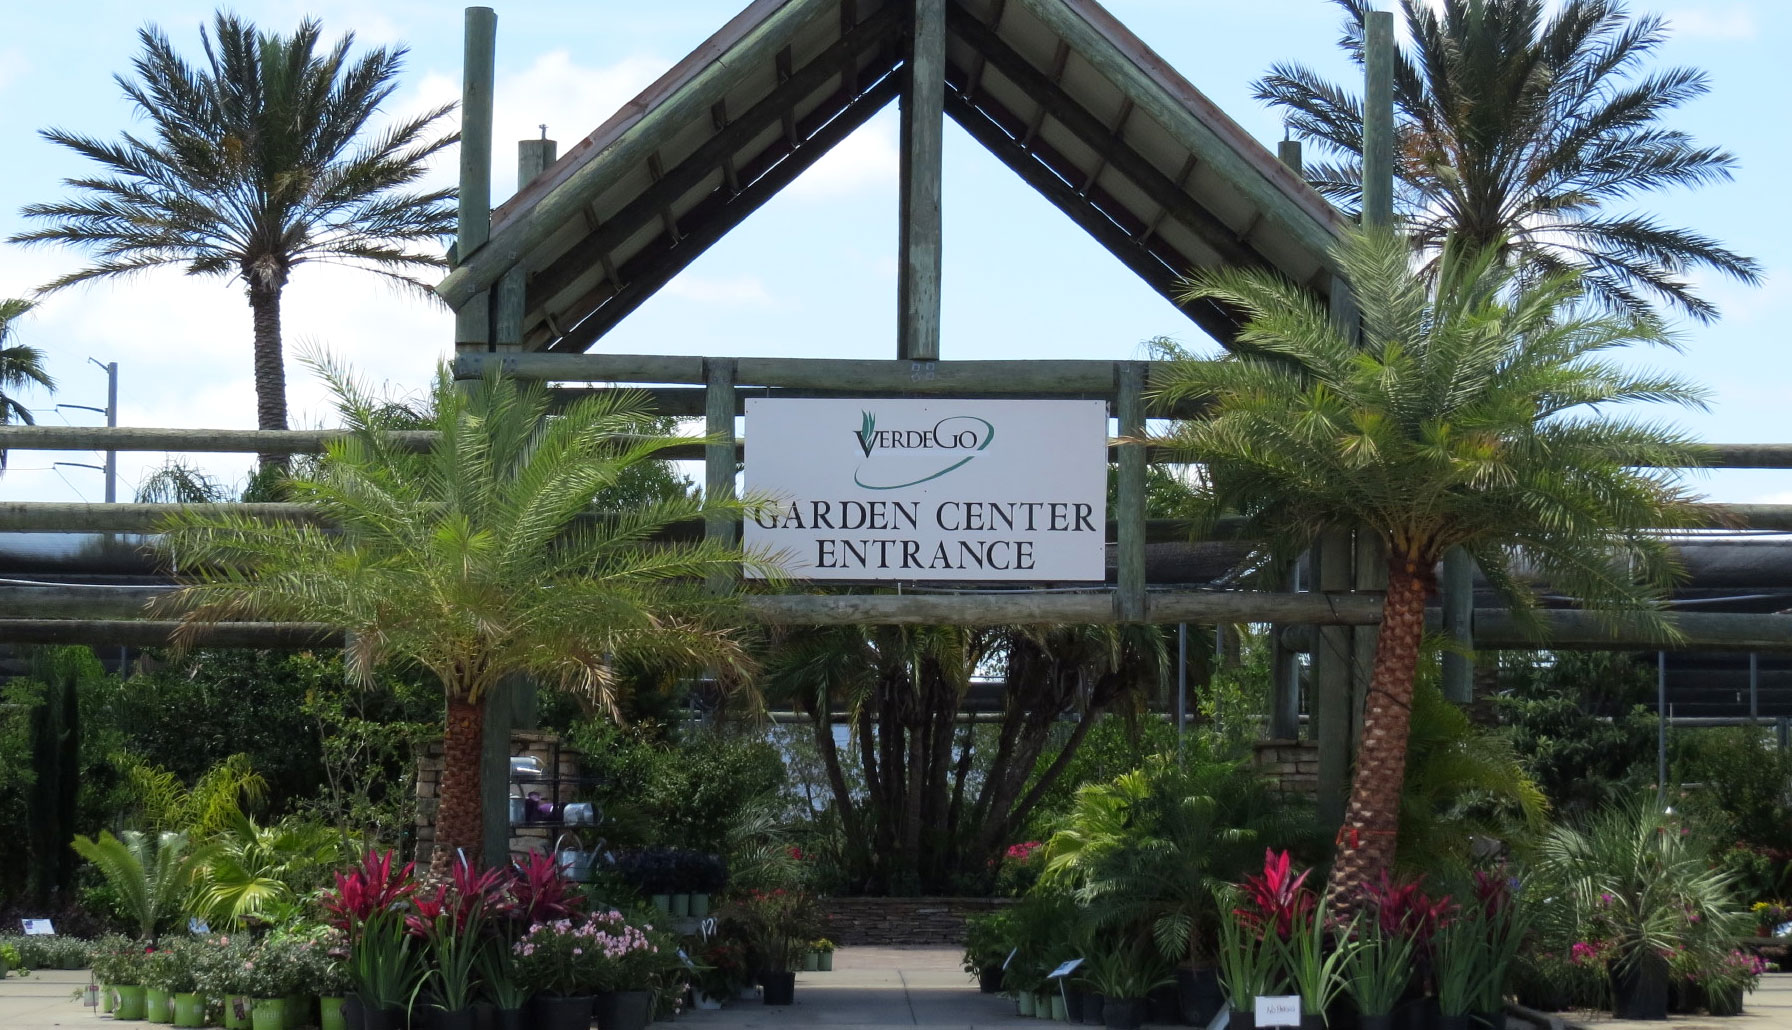 Verdego garden centers palm coast st augustine florida - Palm beach gardens community center ...